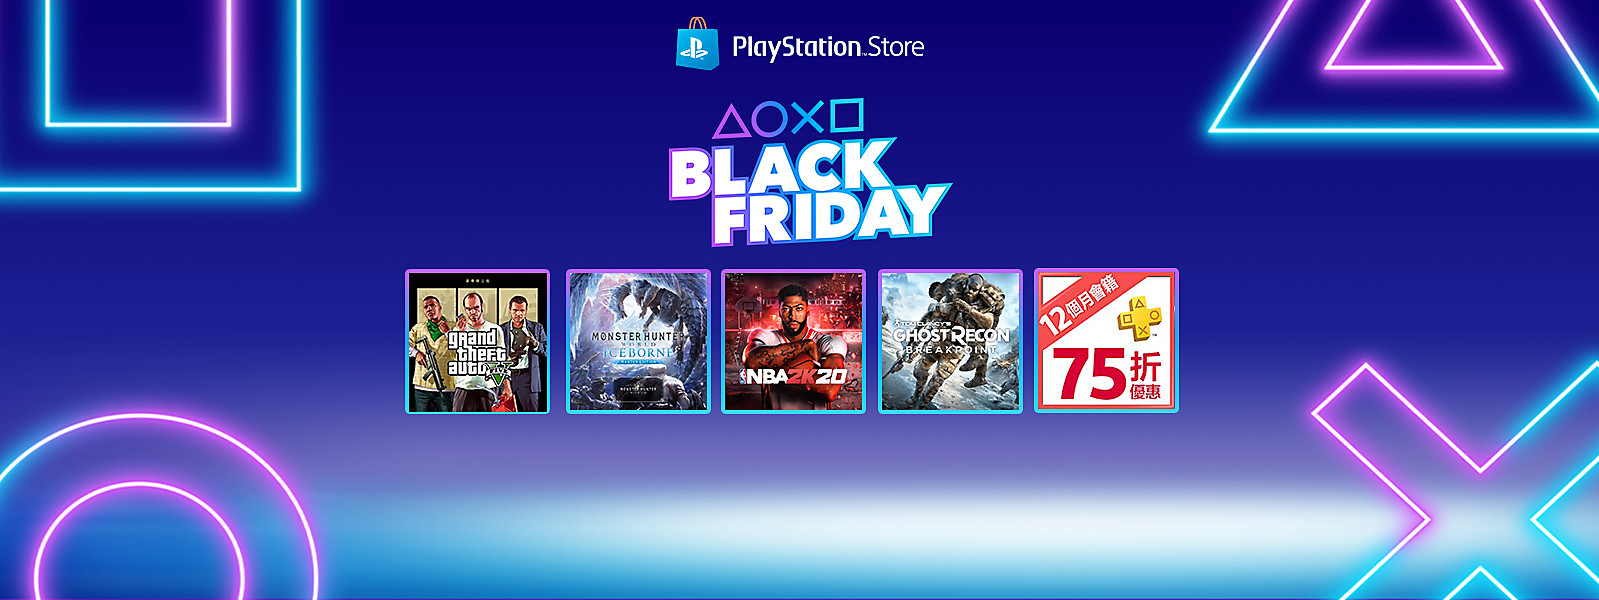 PS Store Black Friday 優惠